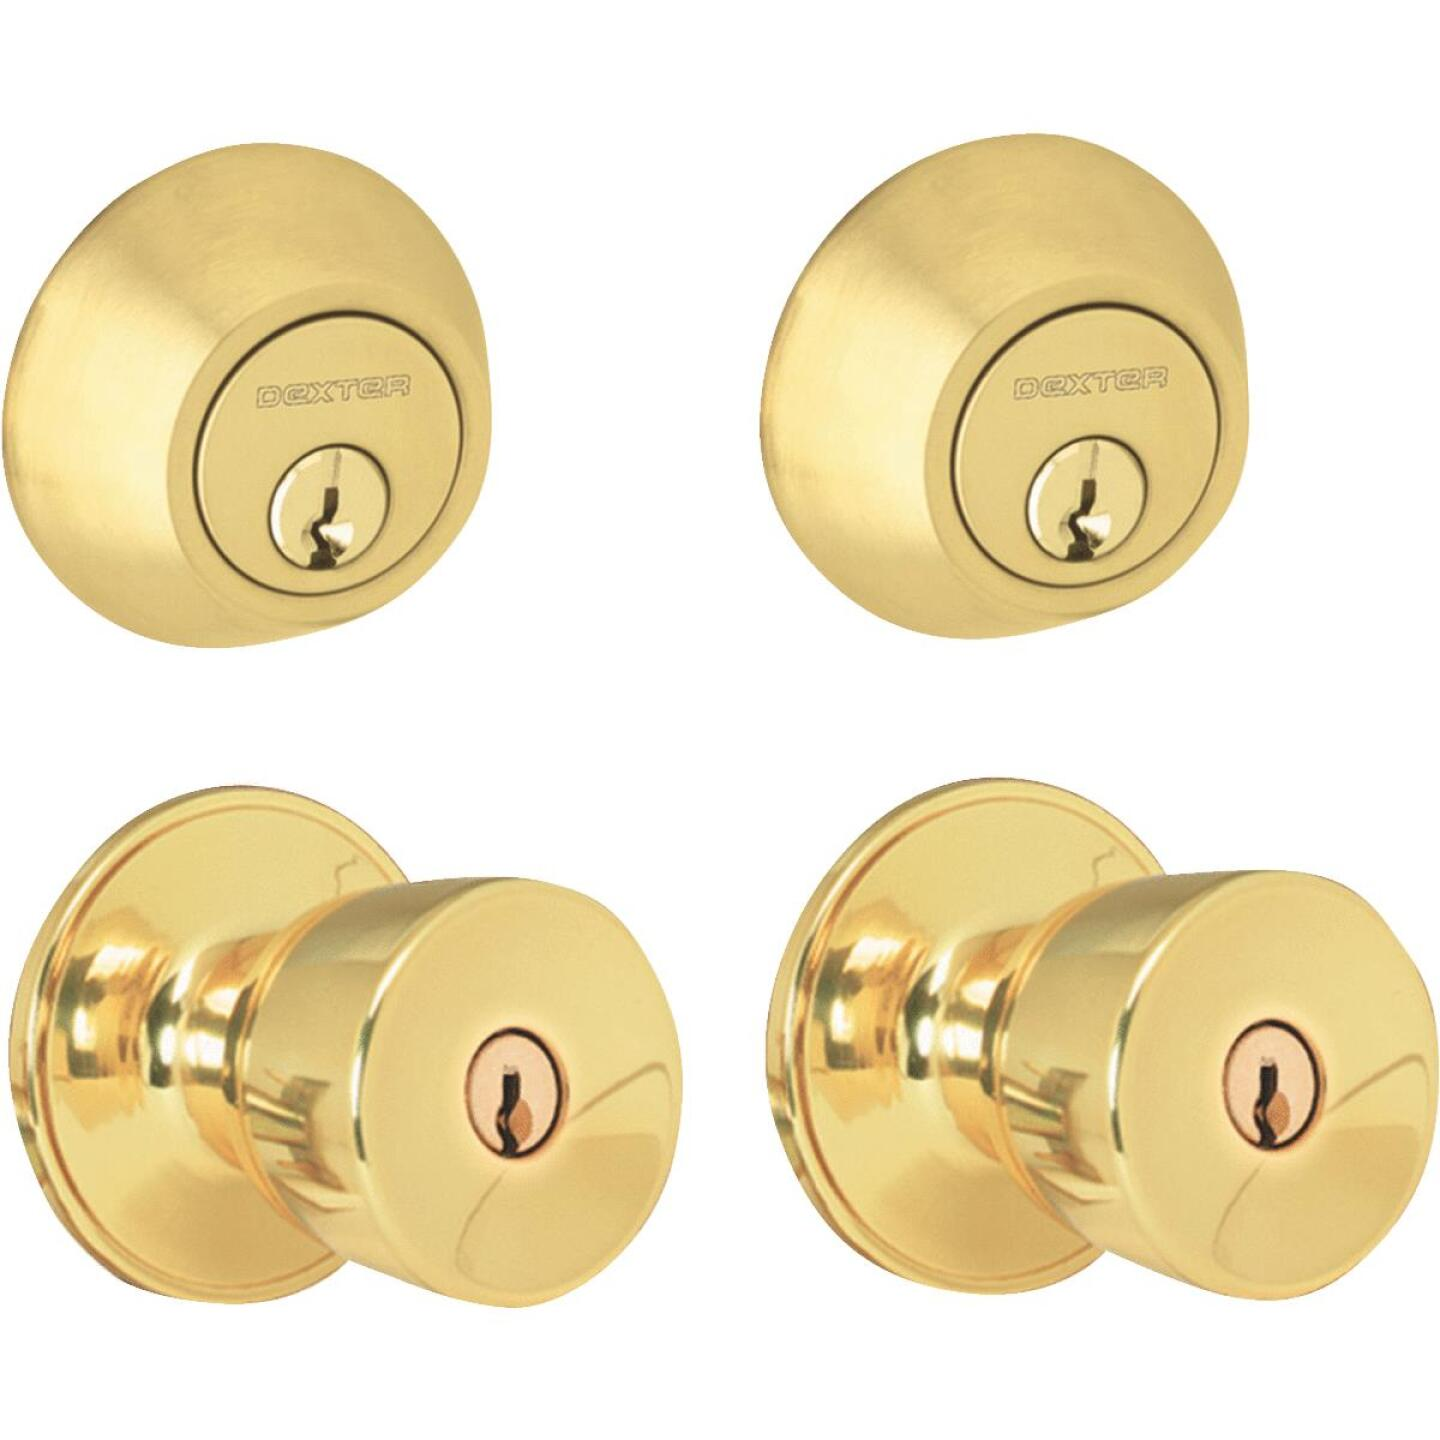 Dexter Bright Brass Deadbolt and Door Knob Combo Image 1